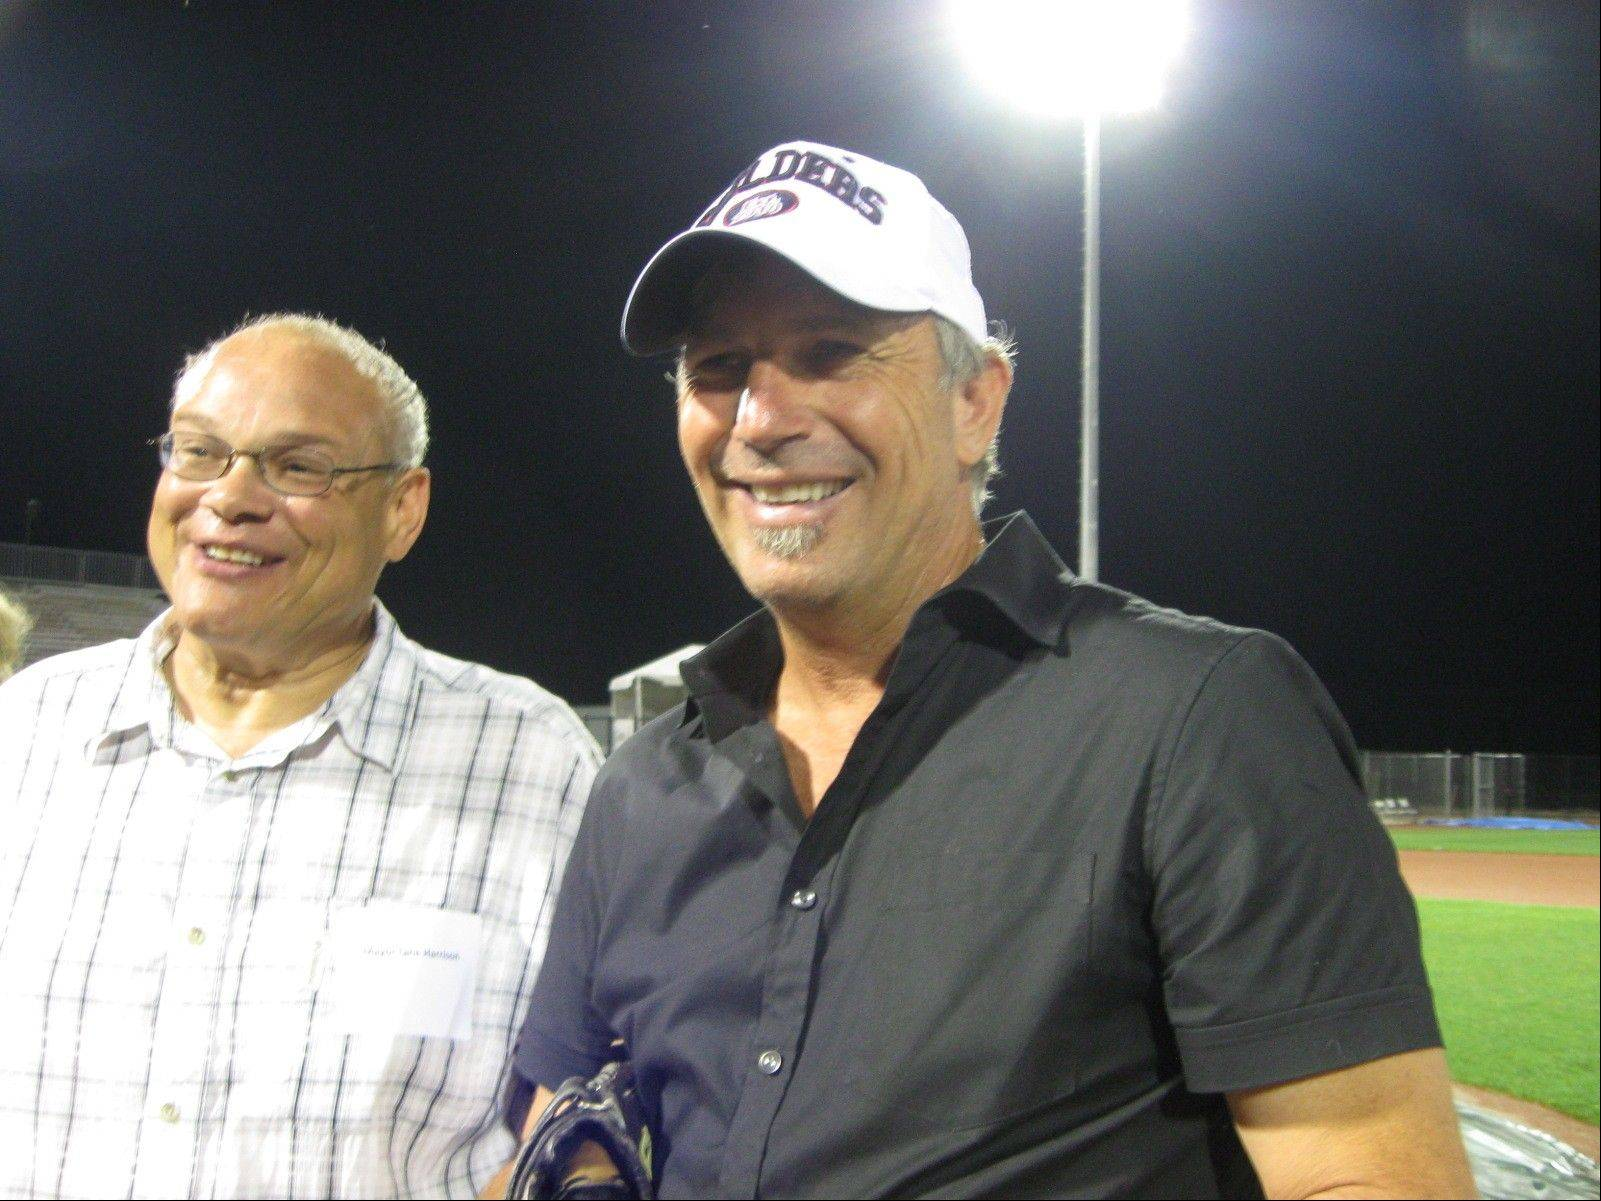 Actor Kevin Costner, billed as a Lake County Fielders co-owner, is with Zion Mayor Lane Harrison in July 2010 when lights were turned on for the first time at the city's temporary ballpark.